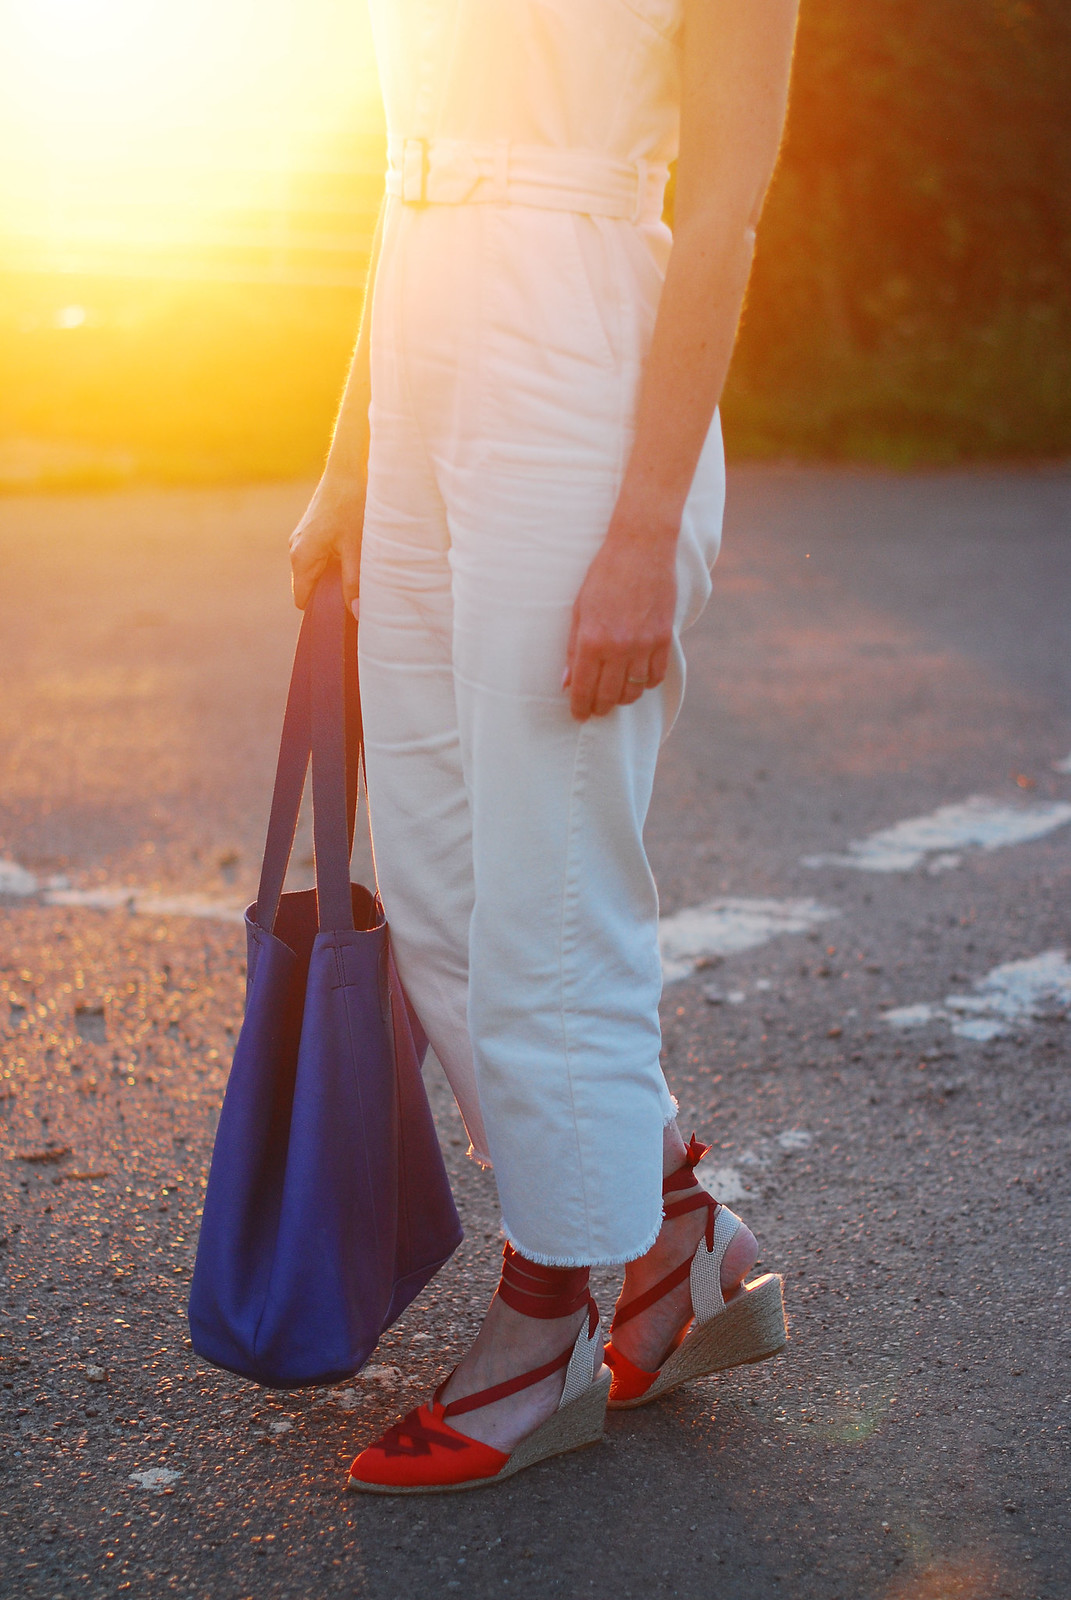 Sleeveless summer overalls: Red, white and blue outfit - red wedge espadrilles, white dungarees, blue slouchy bag | Not Dressed As Lamb